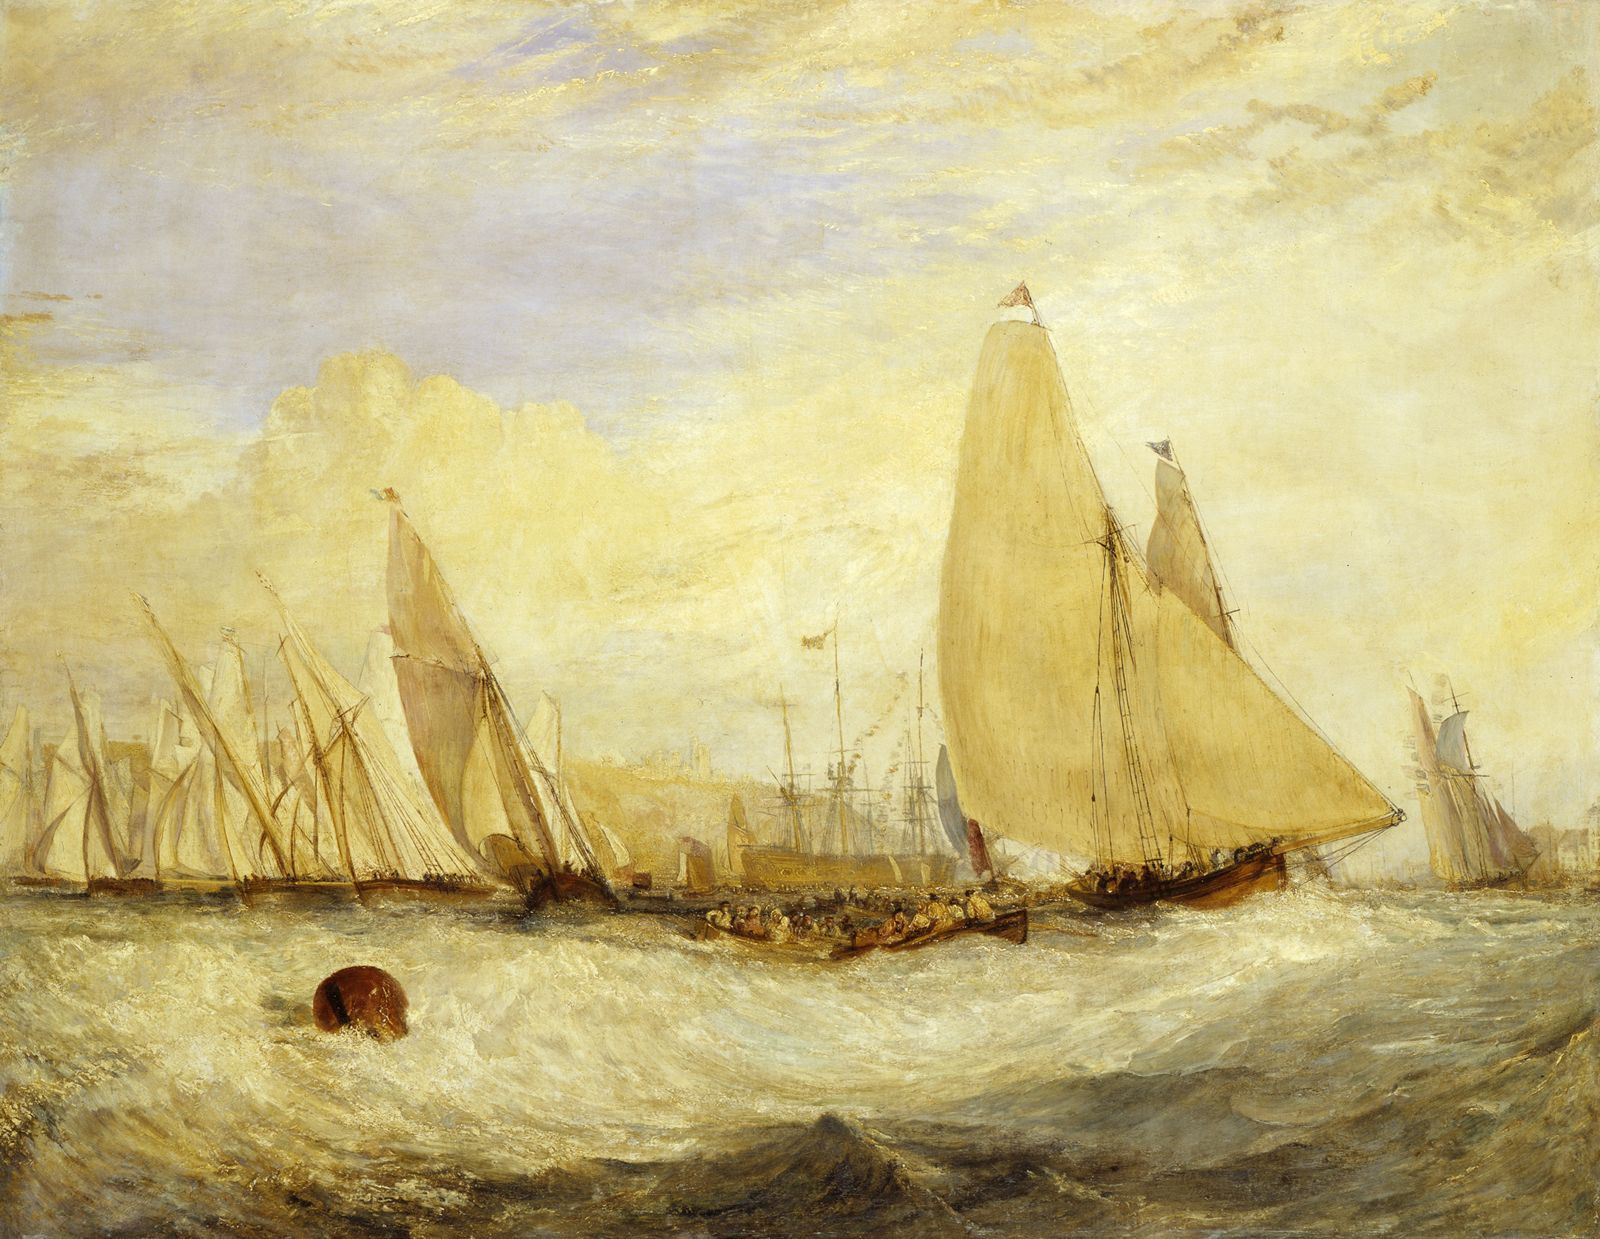 East Cowes Castle, the Seat of J. Nash, Esq., the Regatta Beating to Windward by Joseph Mallord William Turner